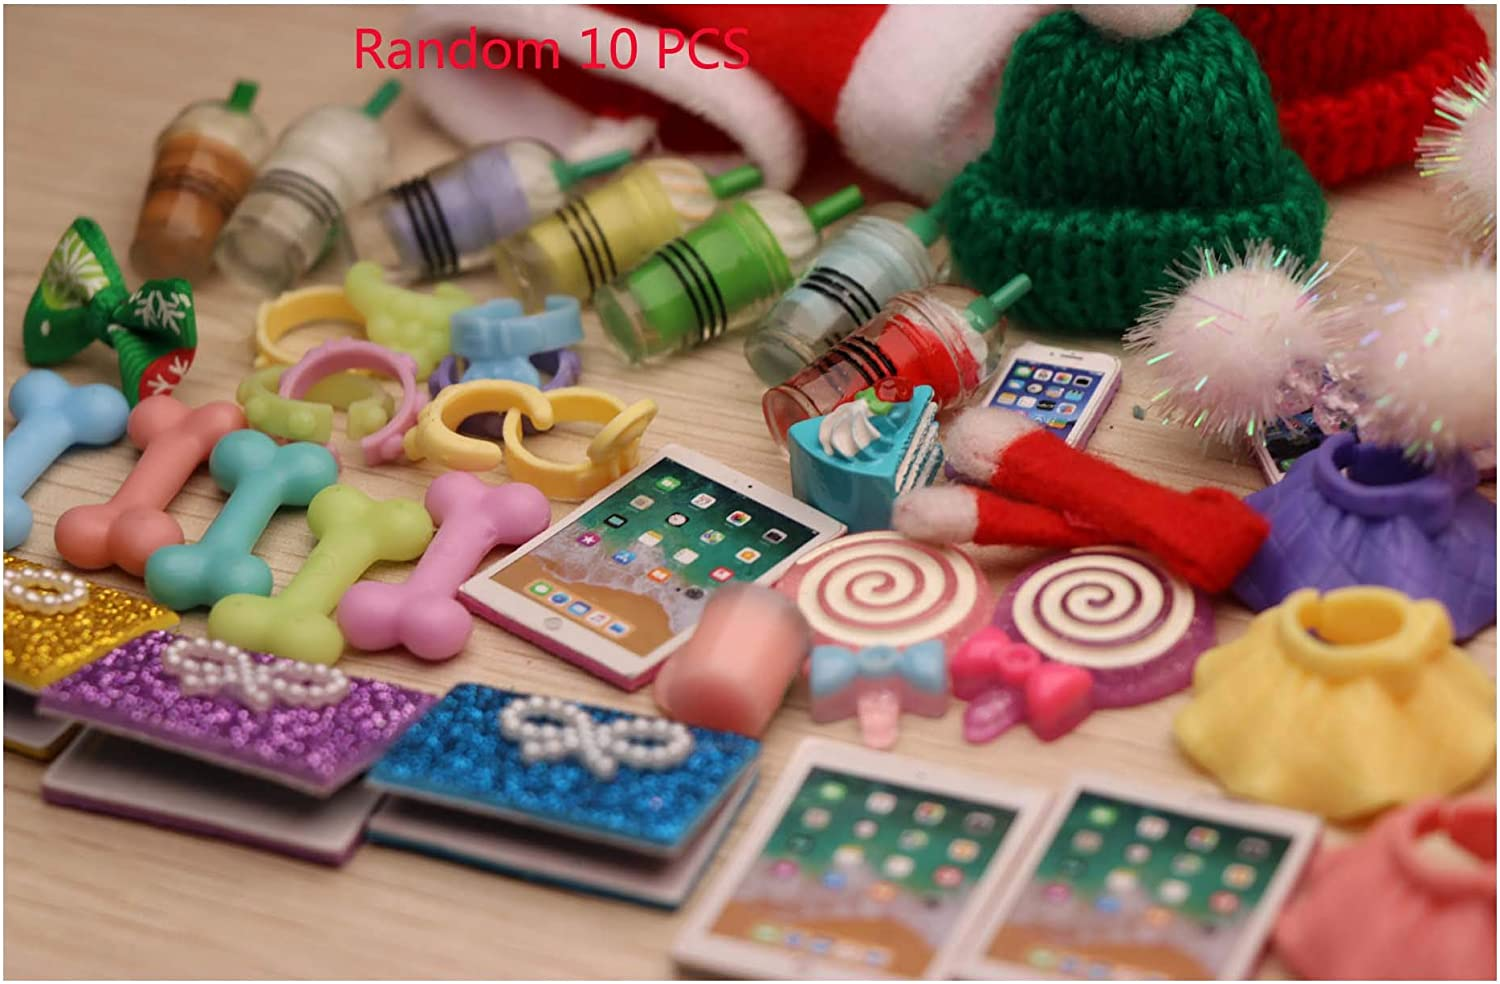 JWRAC LPS Accessories Lot (Random 10 PCS) Bows Skirts Hats Drinks Collars Bones Food Laptop Outfit for LPS Cat and Dog Collie Great Dane